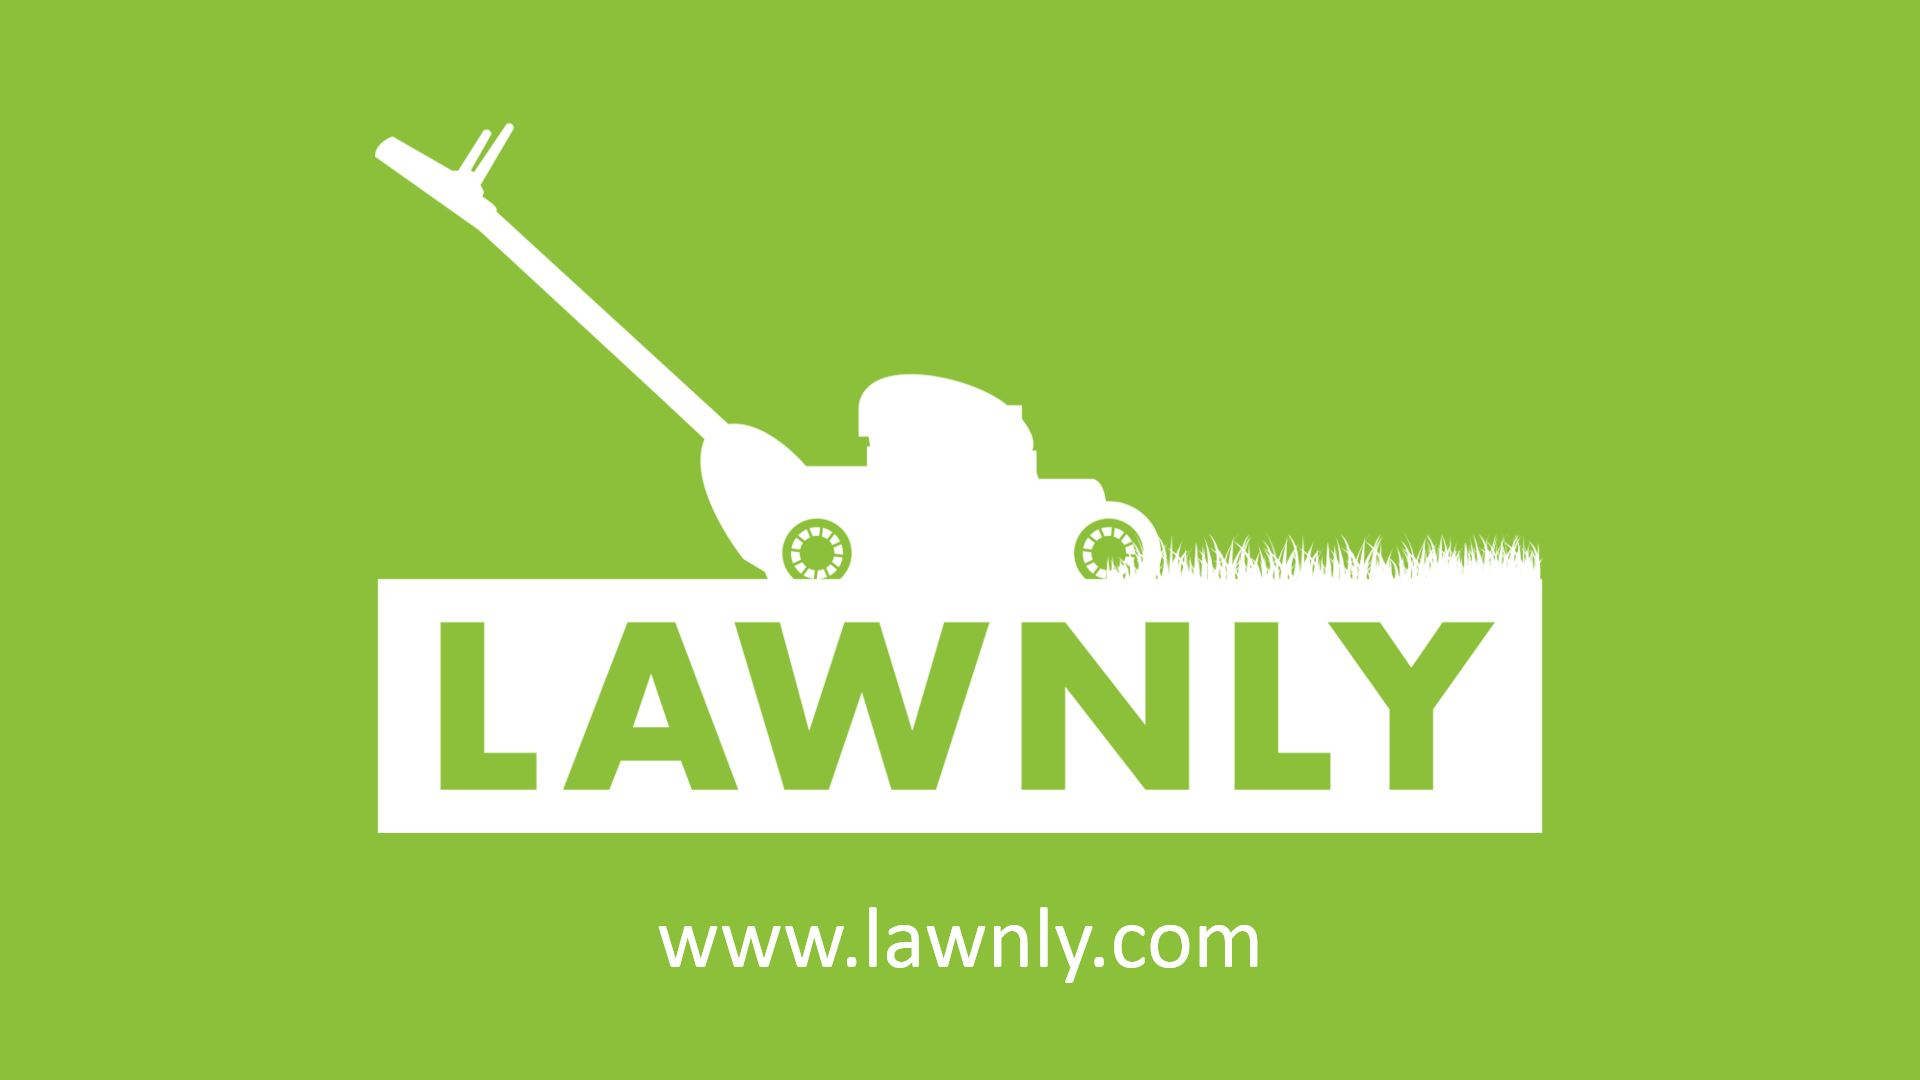 lawnly the uber for lawn care launches in northwest arkansas ad lawnly the uber for lawn care launches in northwest arkansas